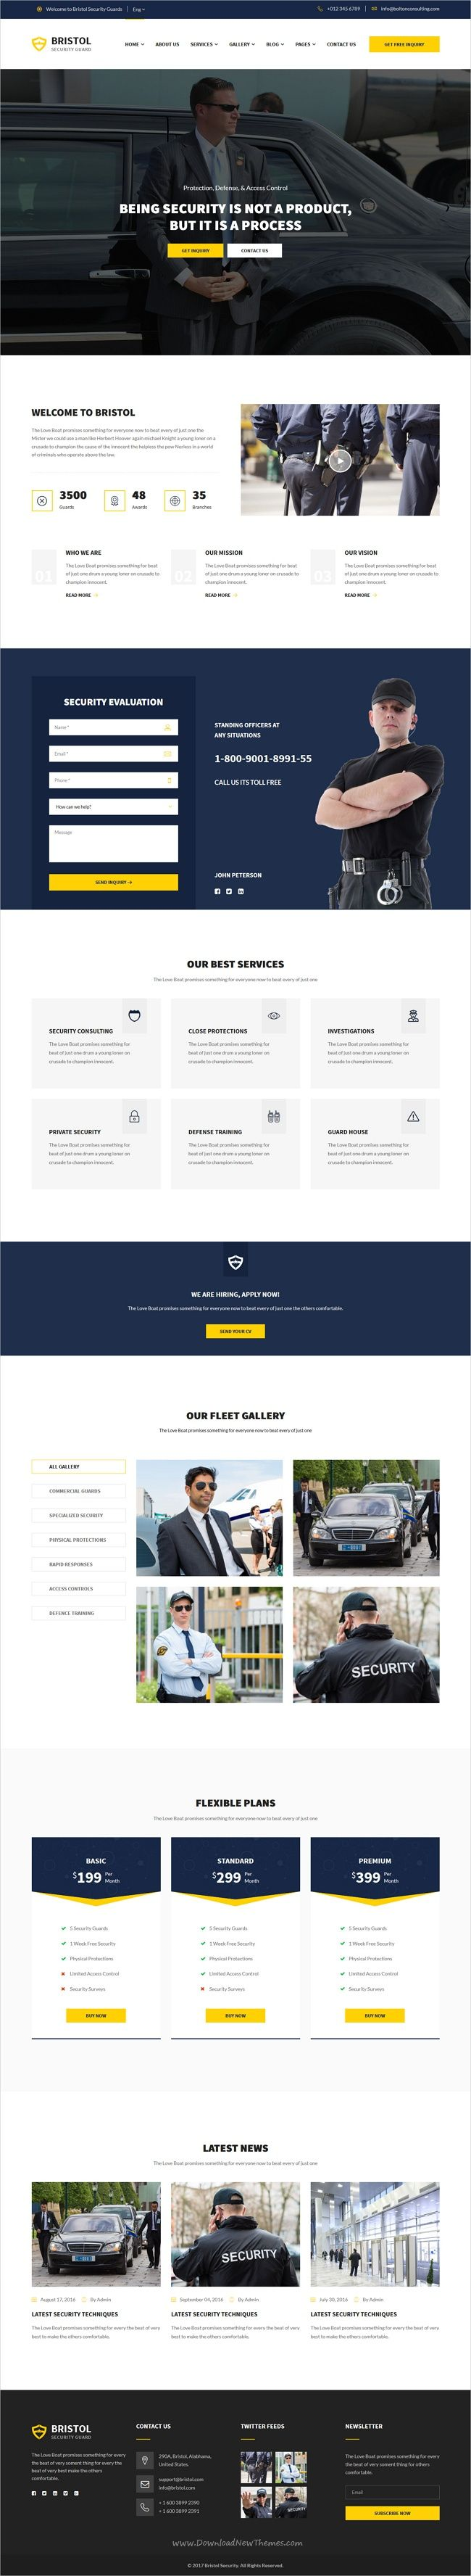 Bristol Security Services Html Template Security Guard Services Security Companies Security Service